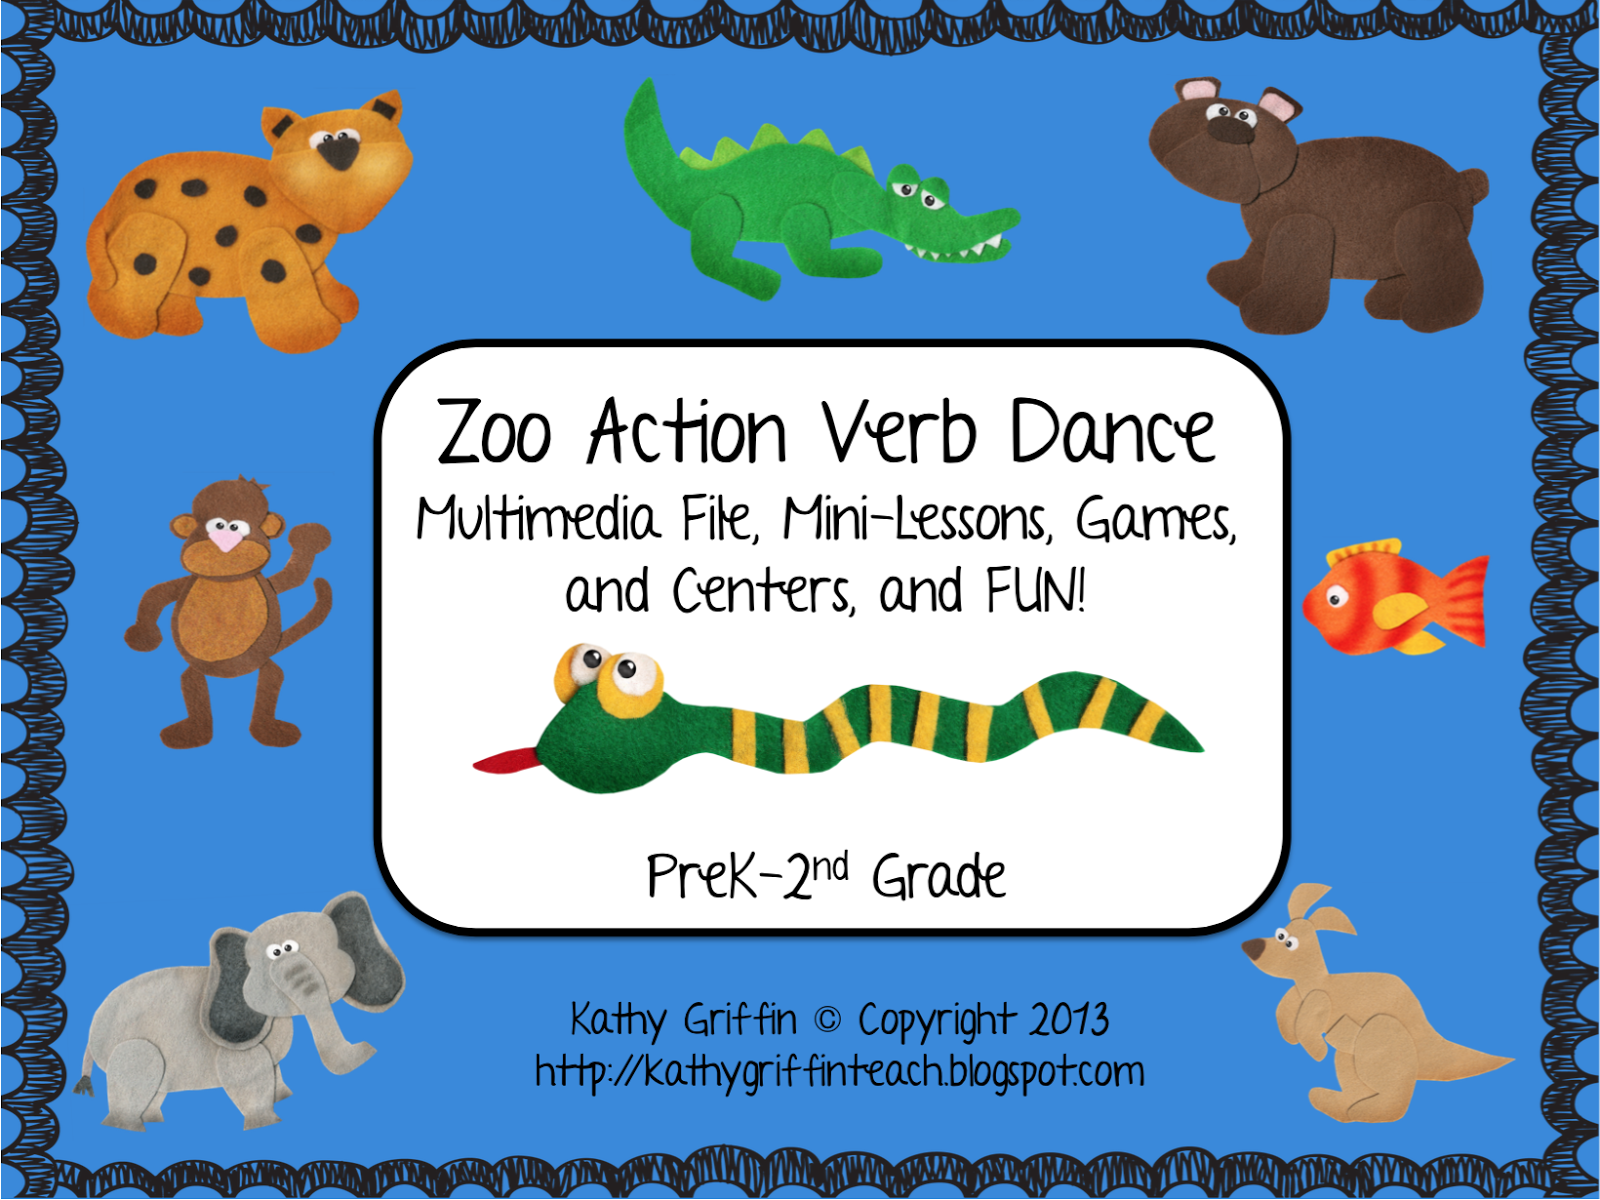 Kathy Griffin S Teaching Strategies Following Directions Activities With Pete The Cat